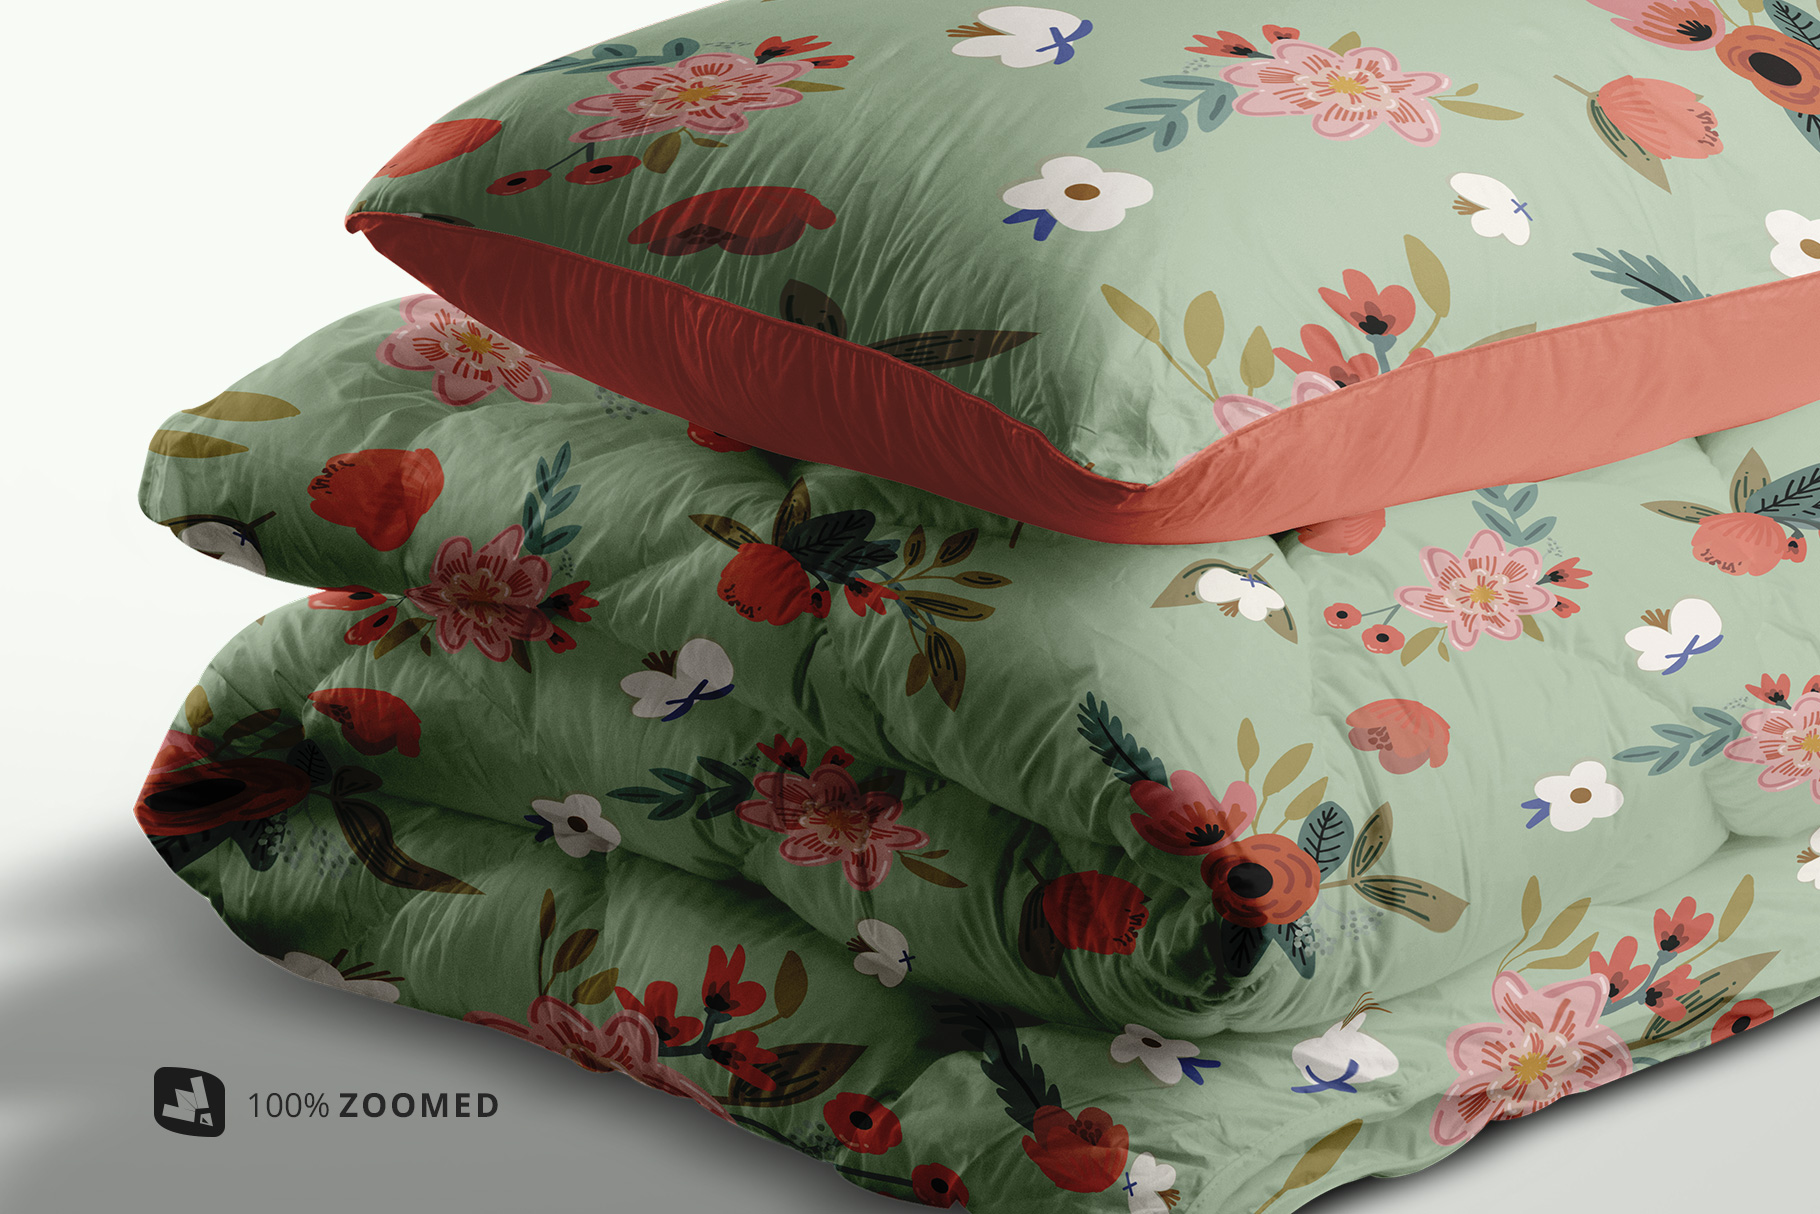 zoomed in image of the duvet & pillow case mockup